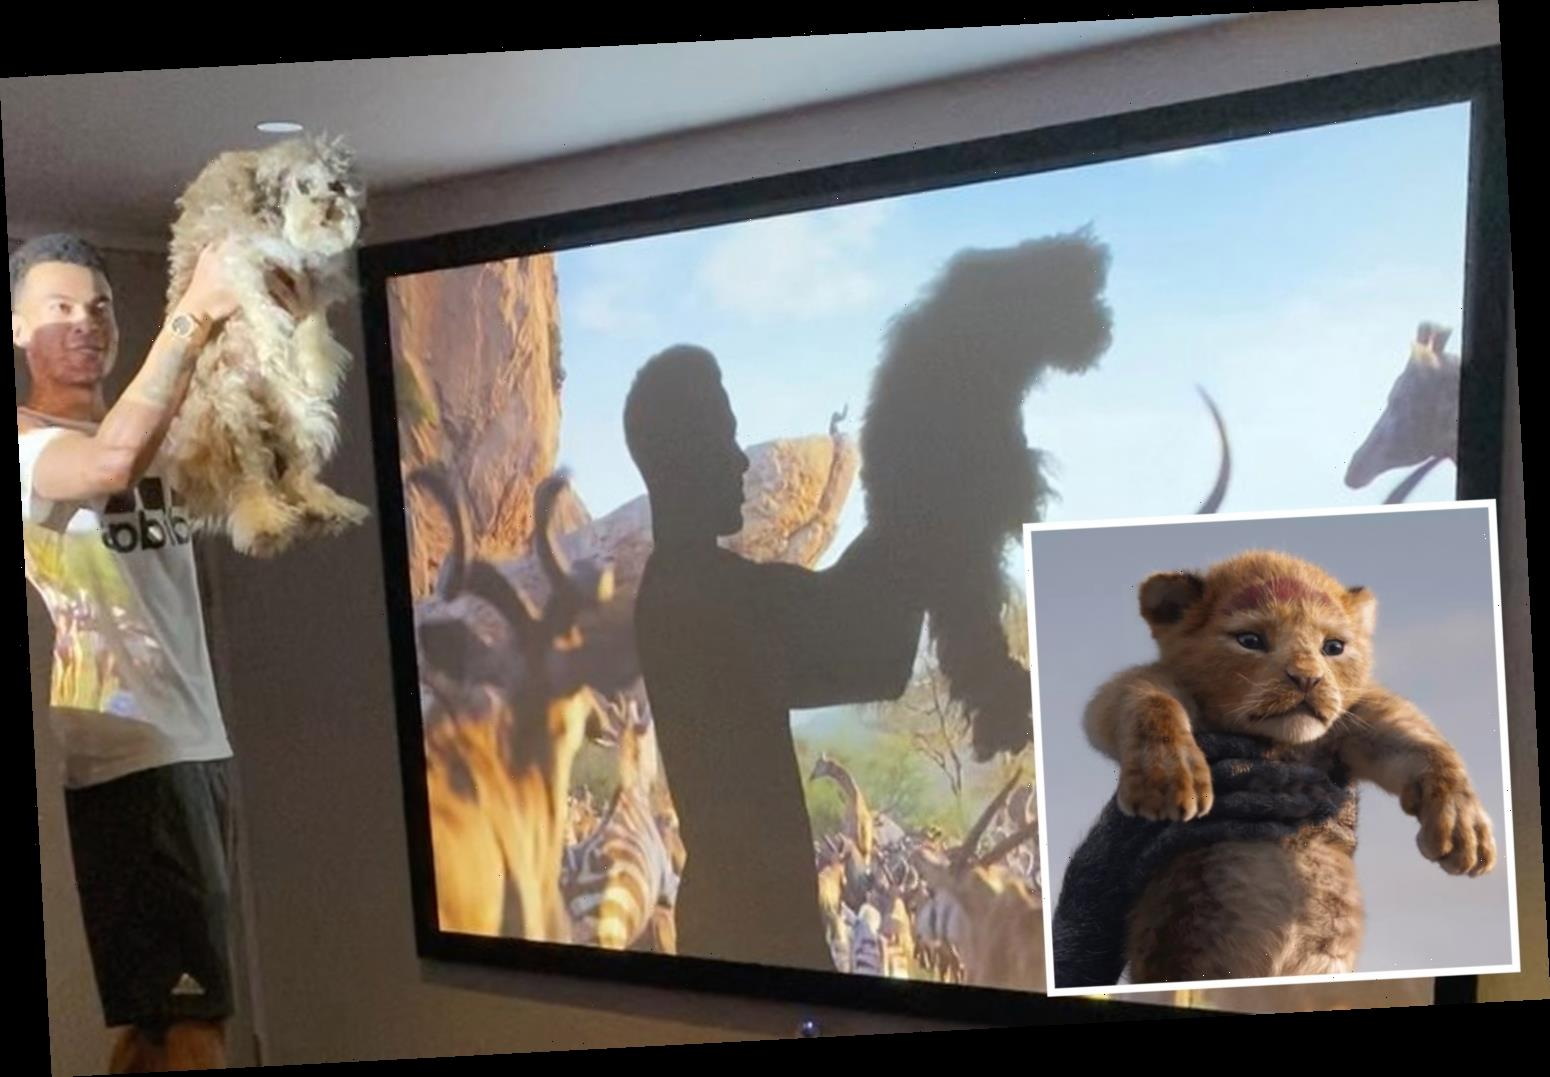 Dele Alli posts hilarious Lion King impression with dog Uno as Tottenham star shows off giant projector TV at his house – The Sun